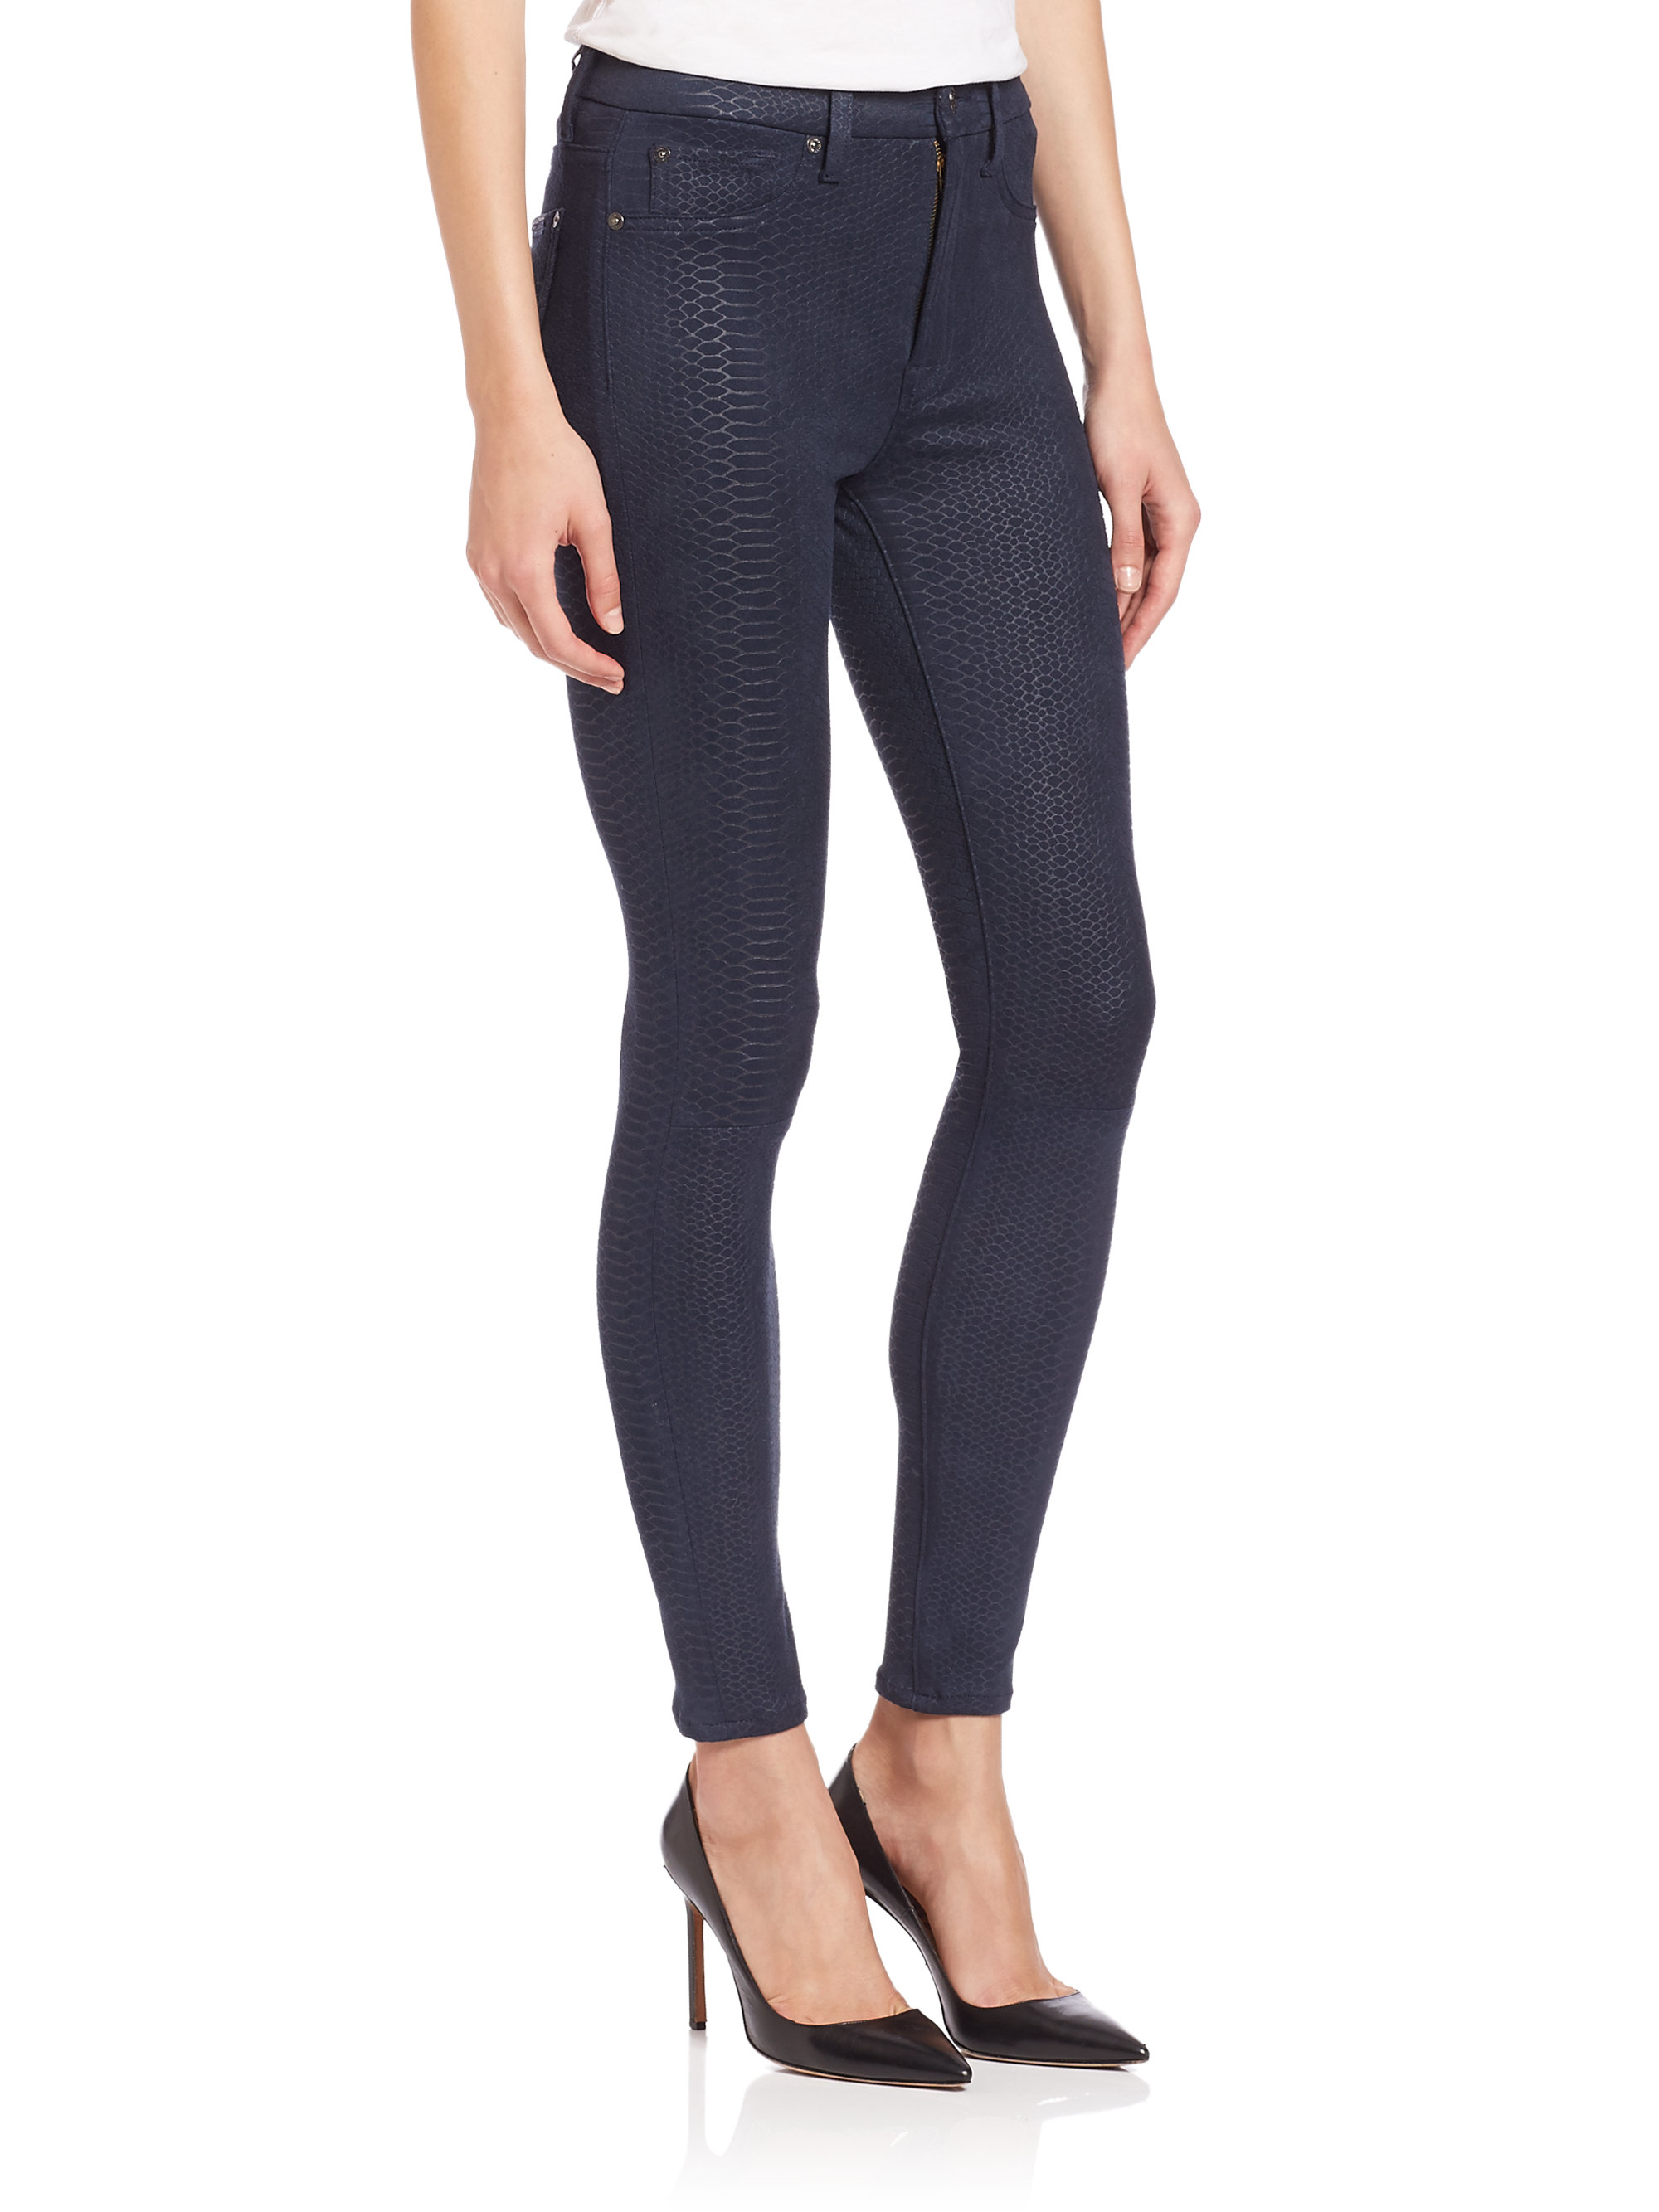 7 for all mankind Embossed Snake-print Skinny Jeans in Black | Lyst